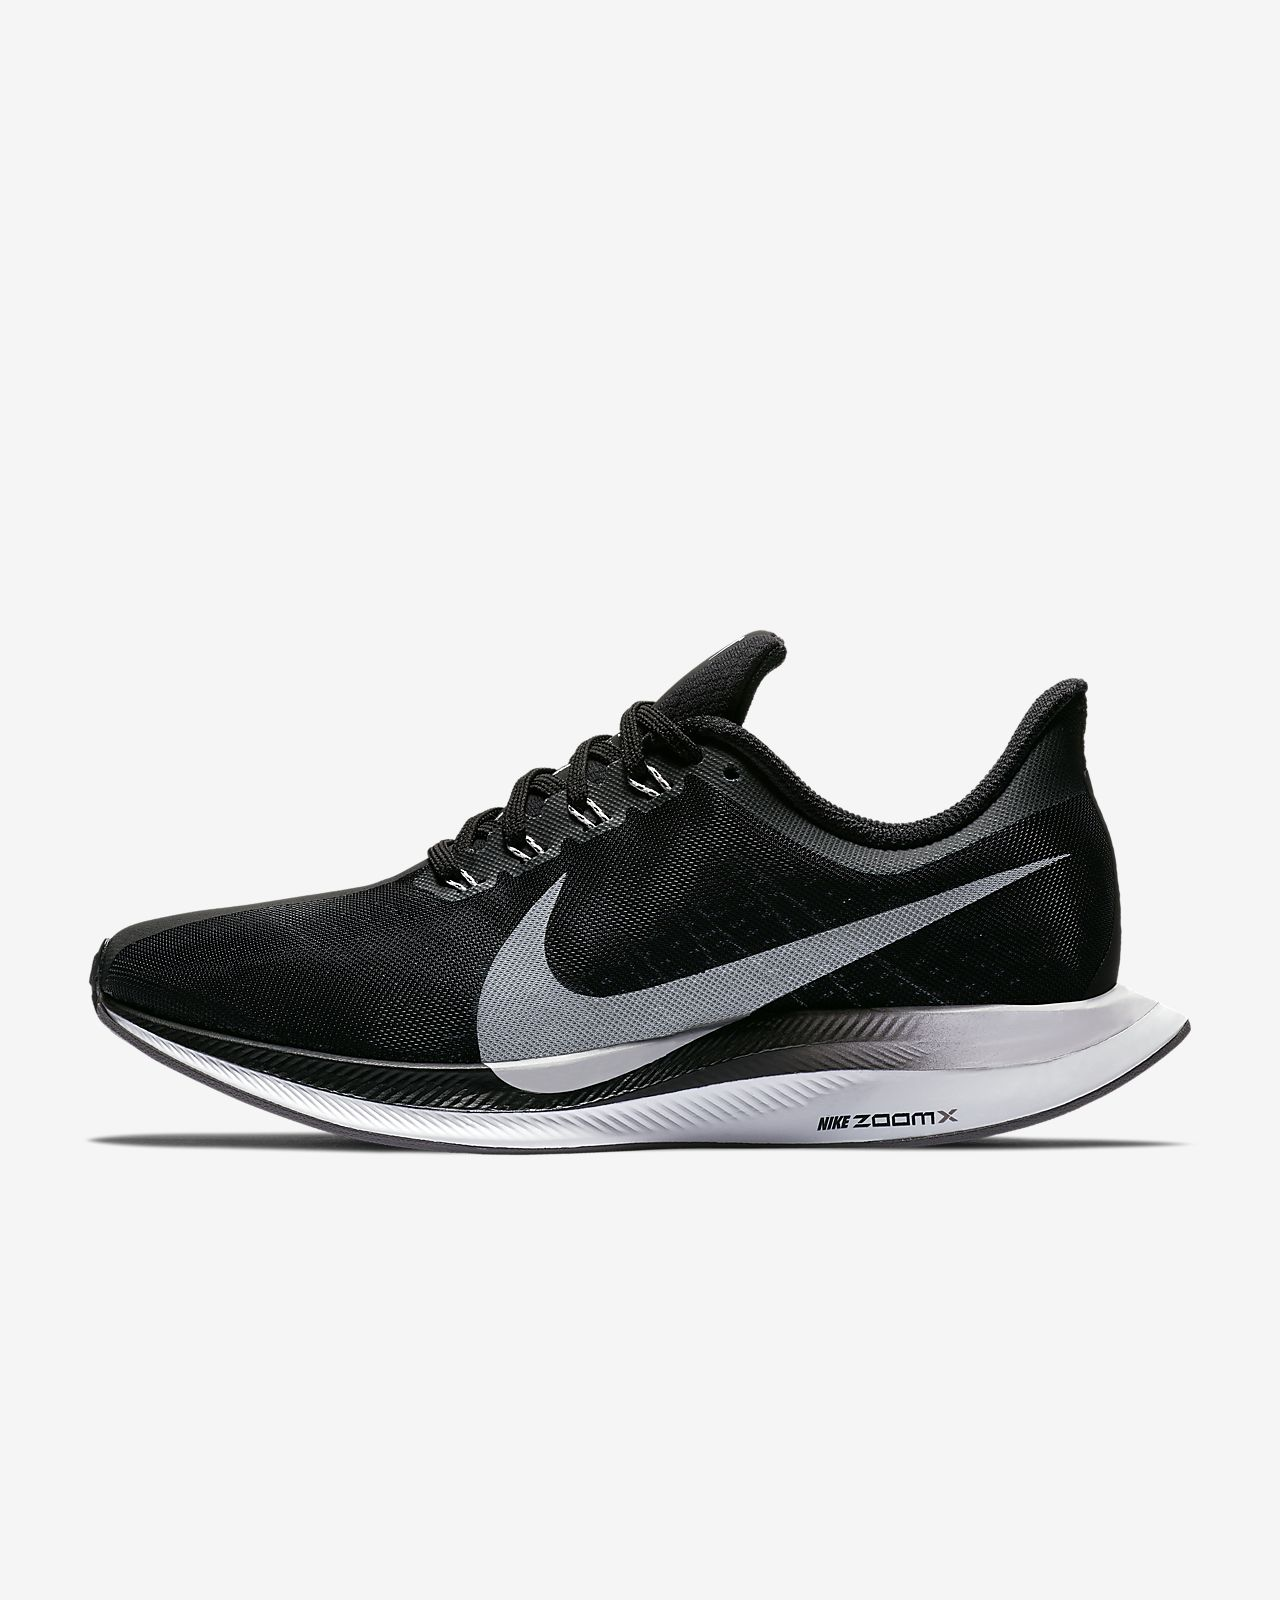 reputable site 0d25b b35e7 ... Nike Zoom Pegasus Turbo Zapatillas de running - Mujer